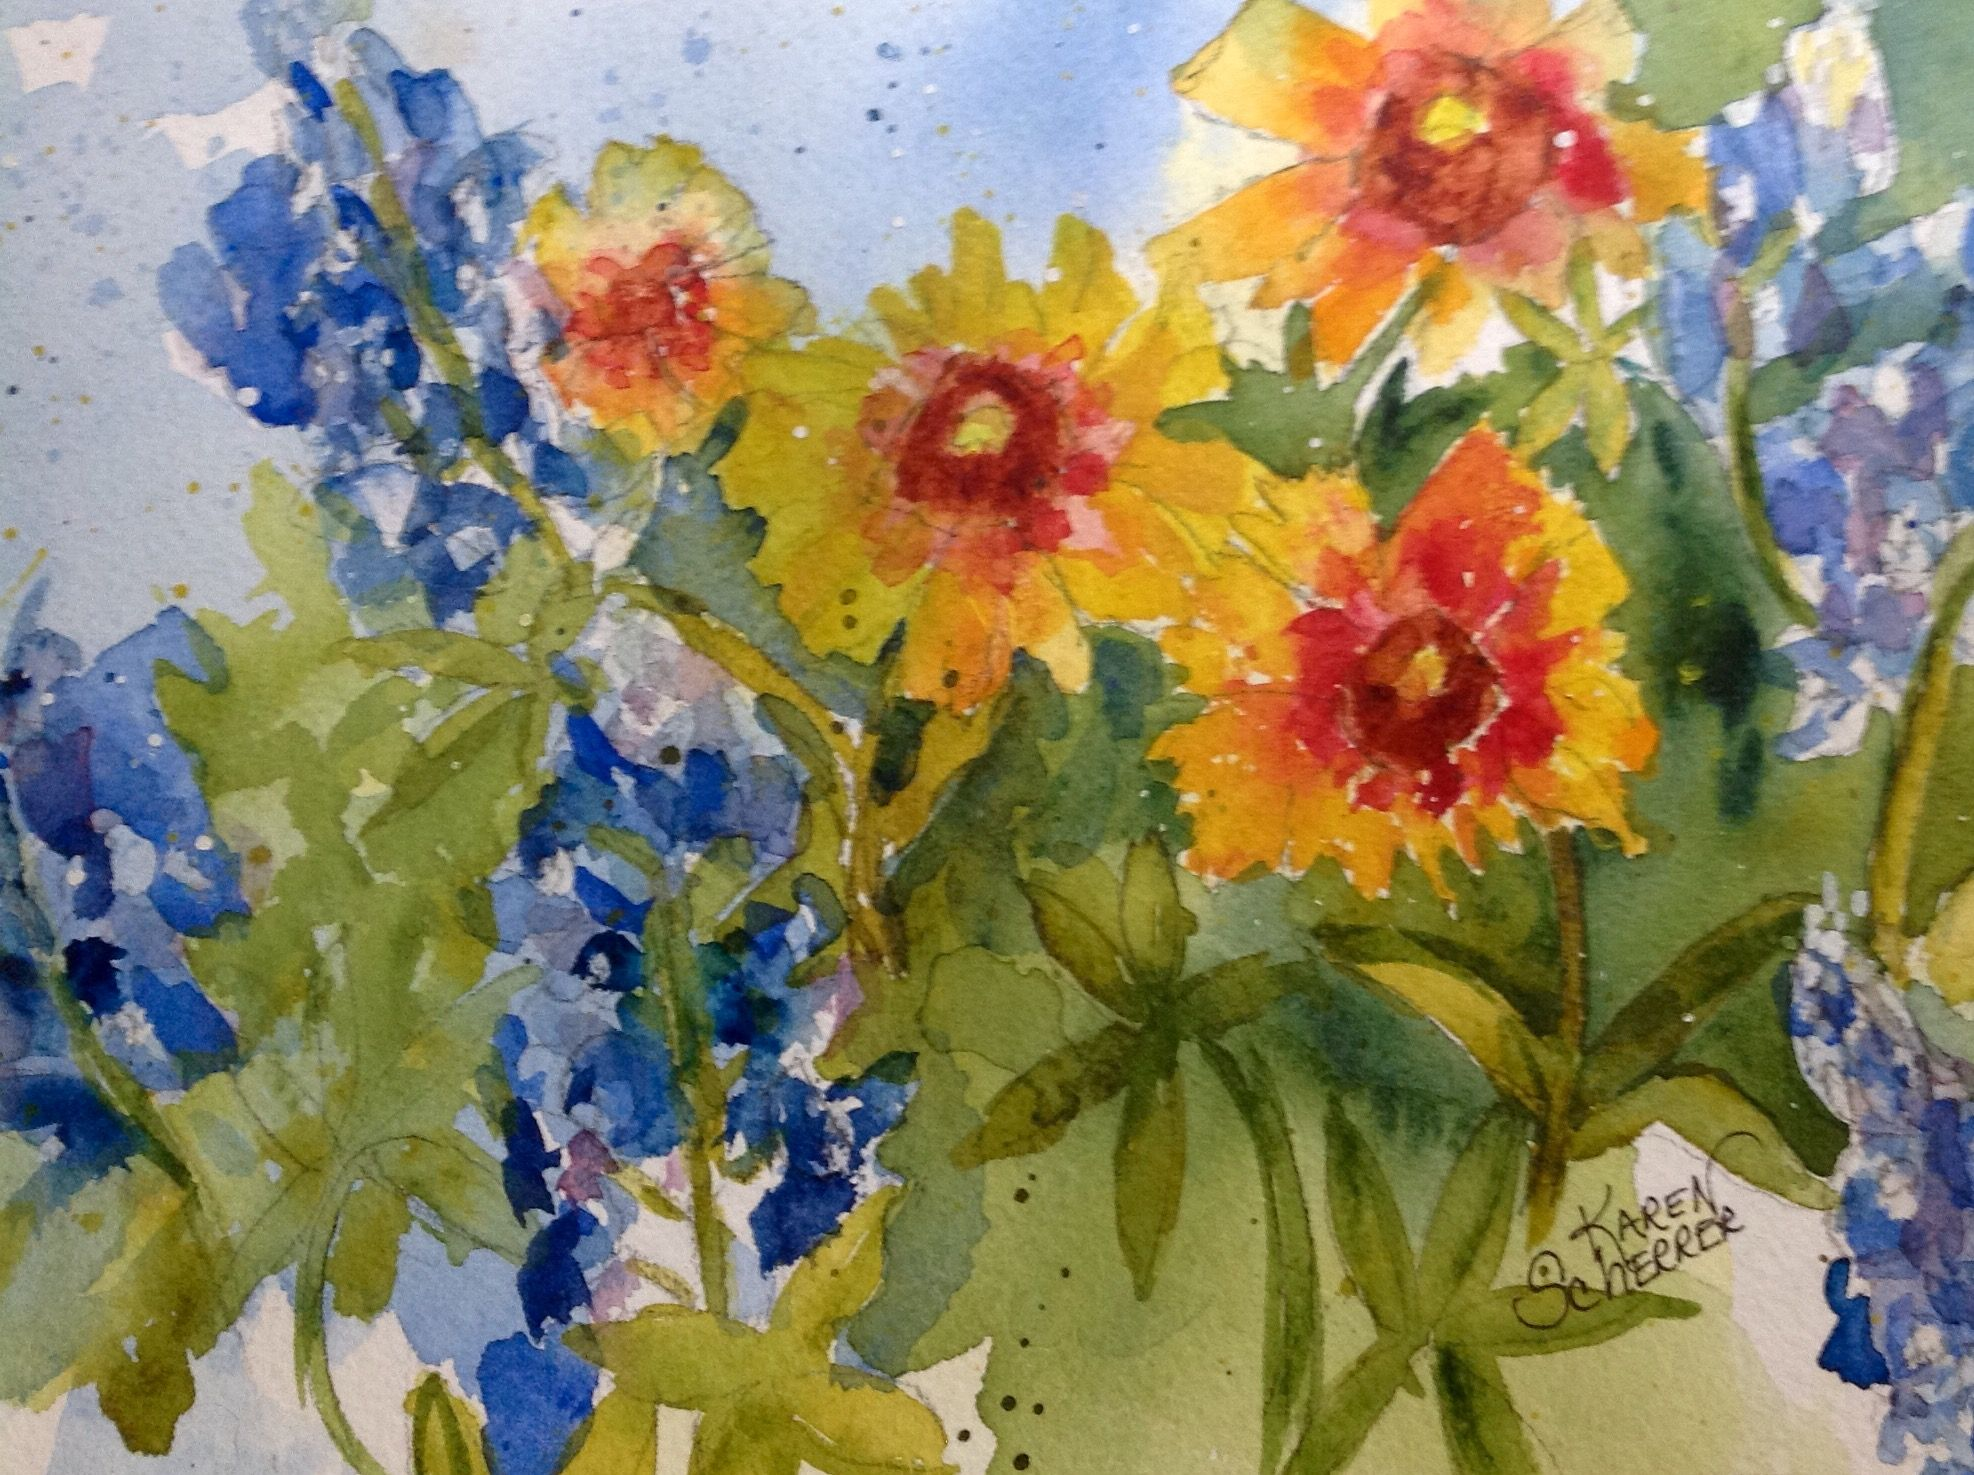 Watercolor artist in texas -  More Wild Thangs By Texas Watercolor Artist Karen Scherrer